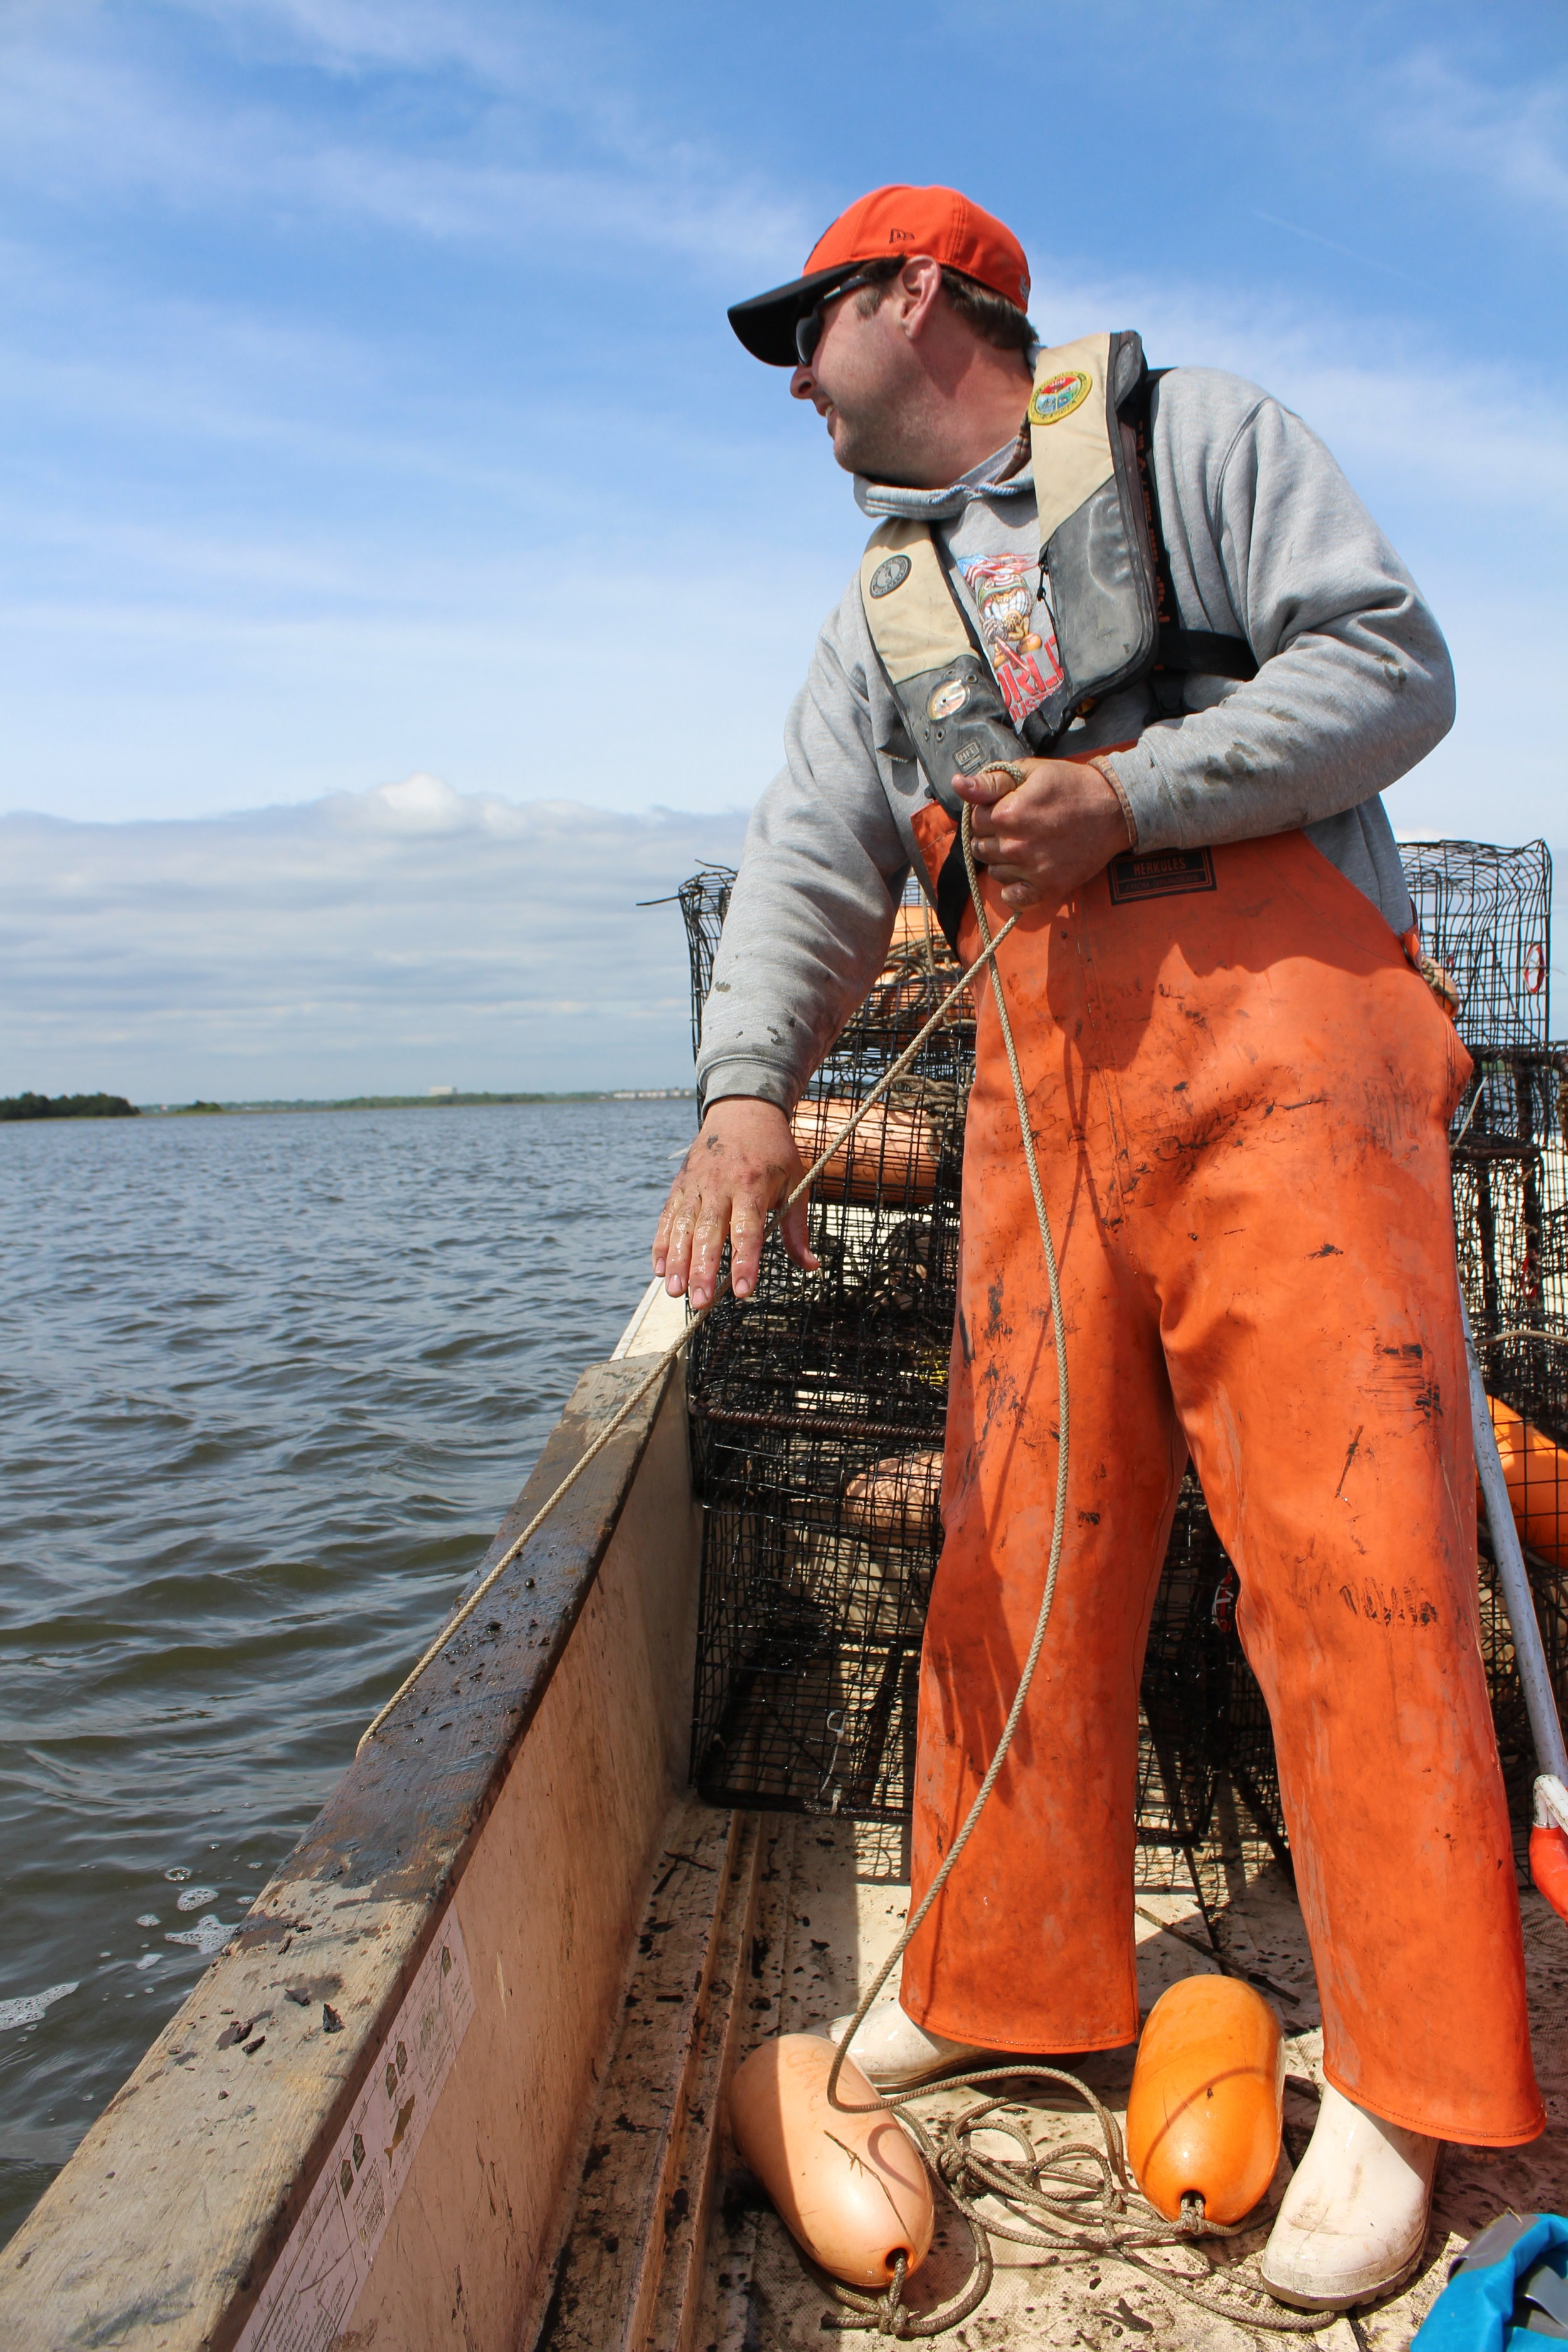 Stevie Czwartacki hauls in a crab trap on the Ashley River. The ever-fashionable necessity of foul weather gear (the orange overalls) is a subject for another blog post. (Photo: E. Weeks/SCDNR)